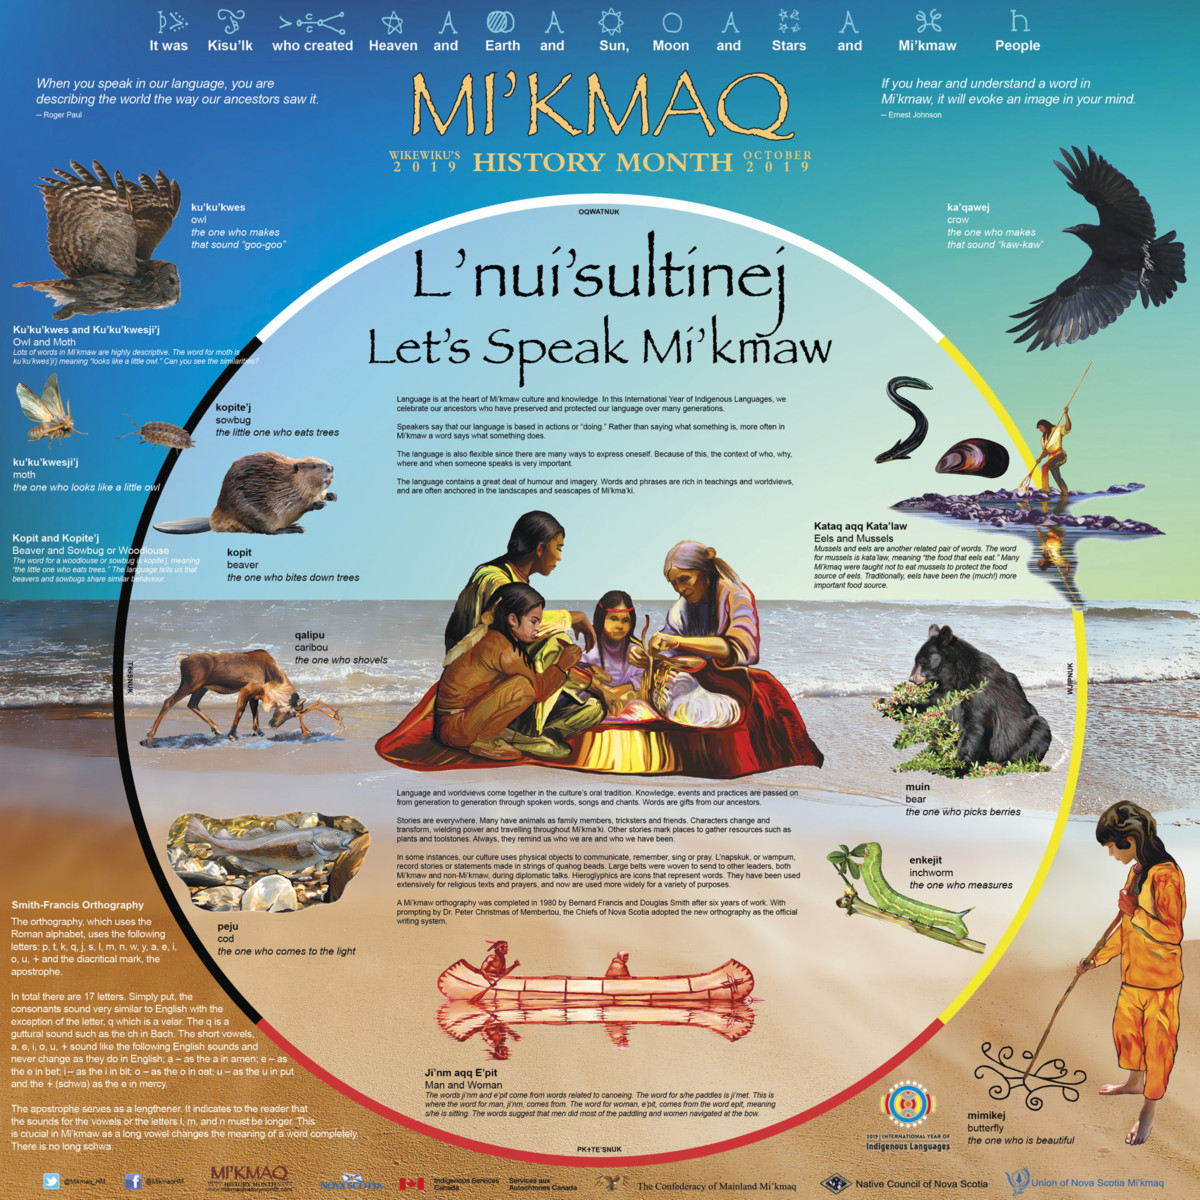 Mi'kmaq History Month Poster. The poster includes photos of two adults and two children sitting together in a circle. Photos of animals and their names in Mi'kmaq along with the description go around the page.